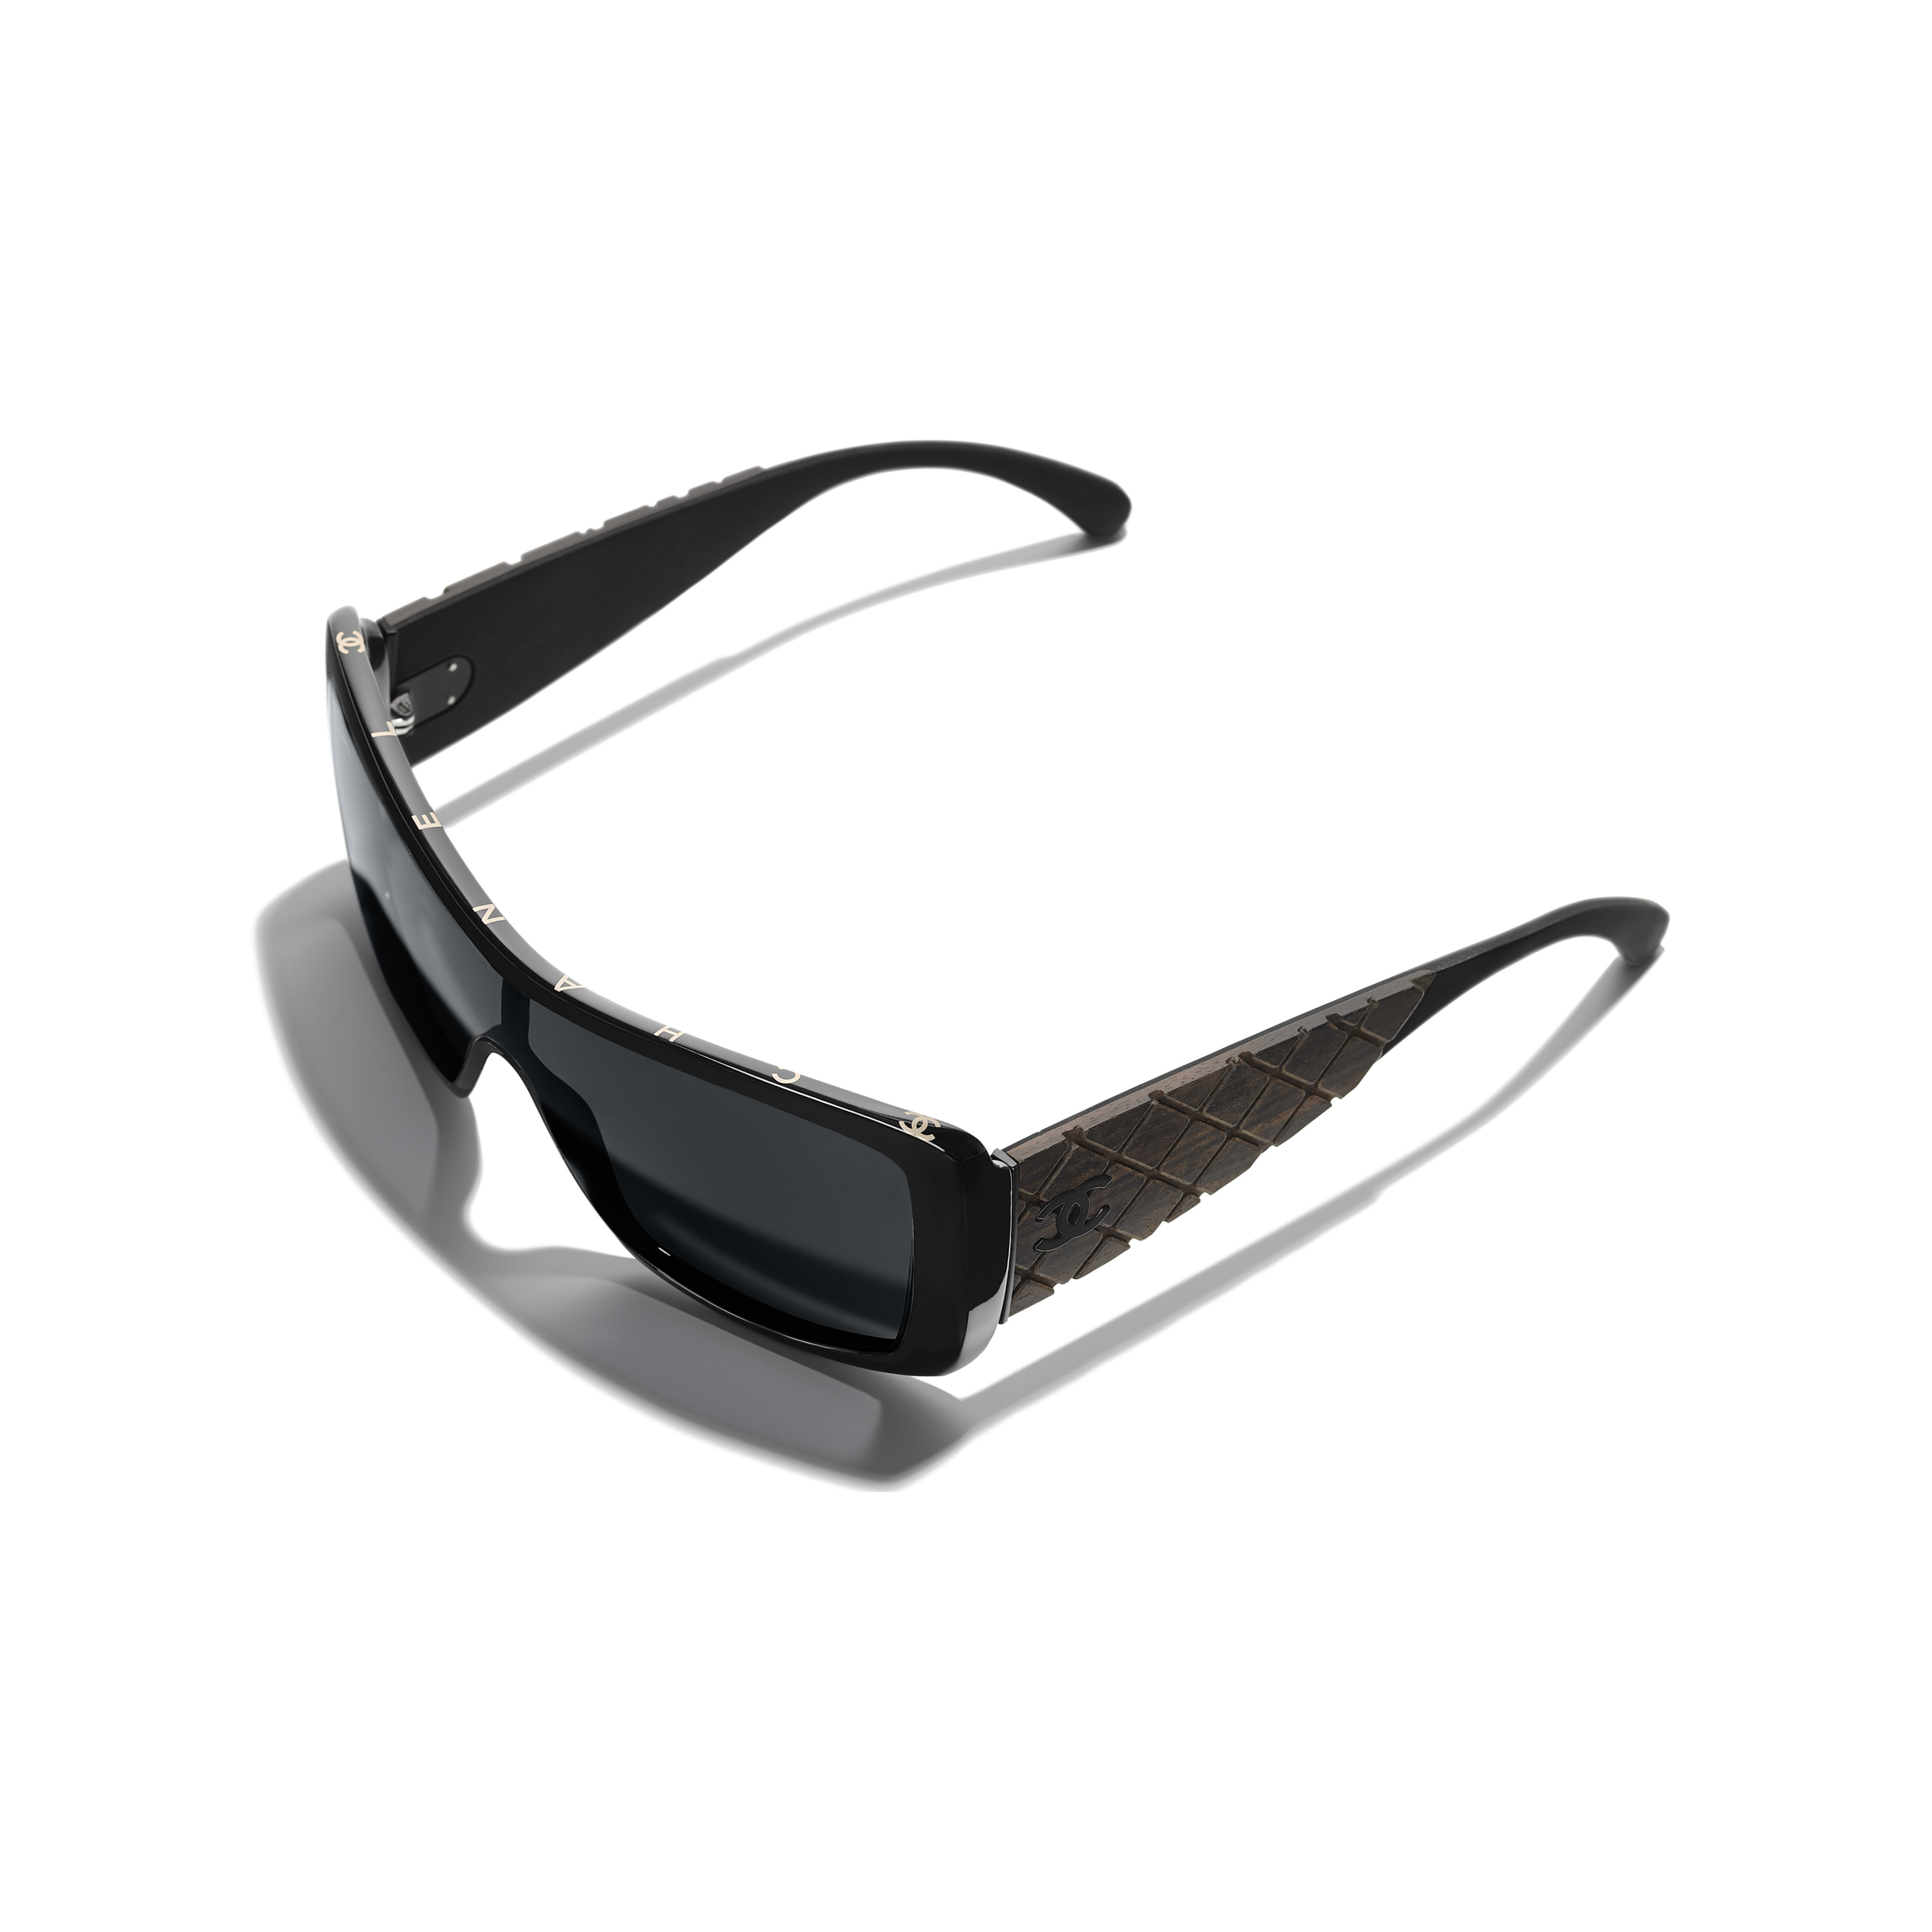 Shield Sunglasses - Black - Acetate, Wood & Rubber - Extra view - see full sized version